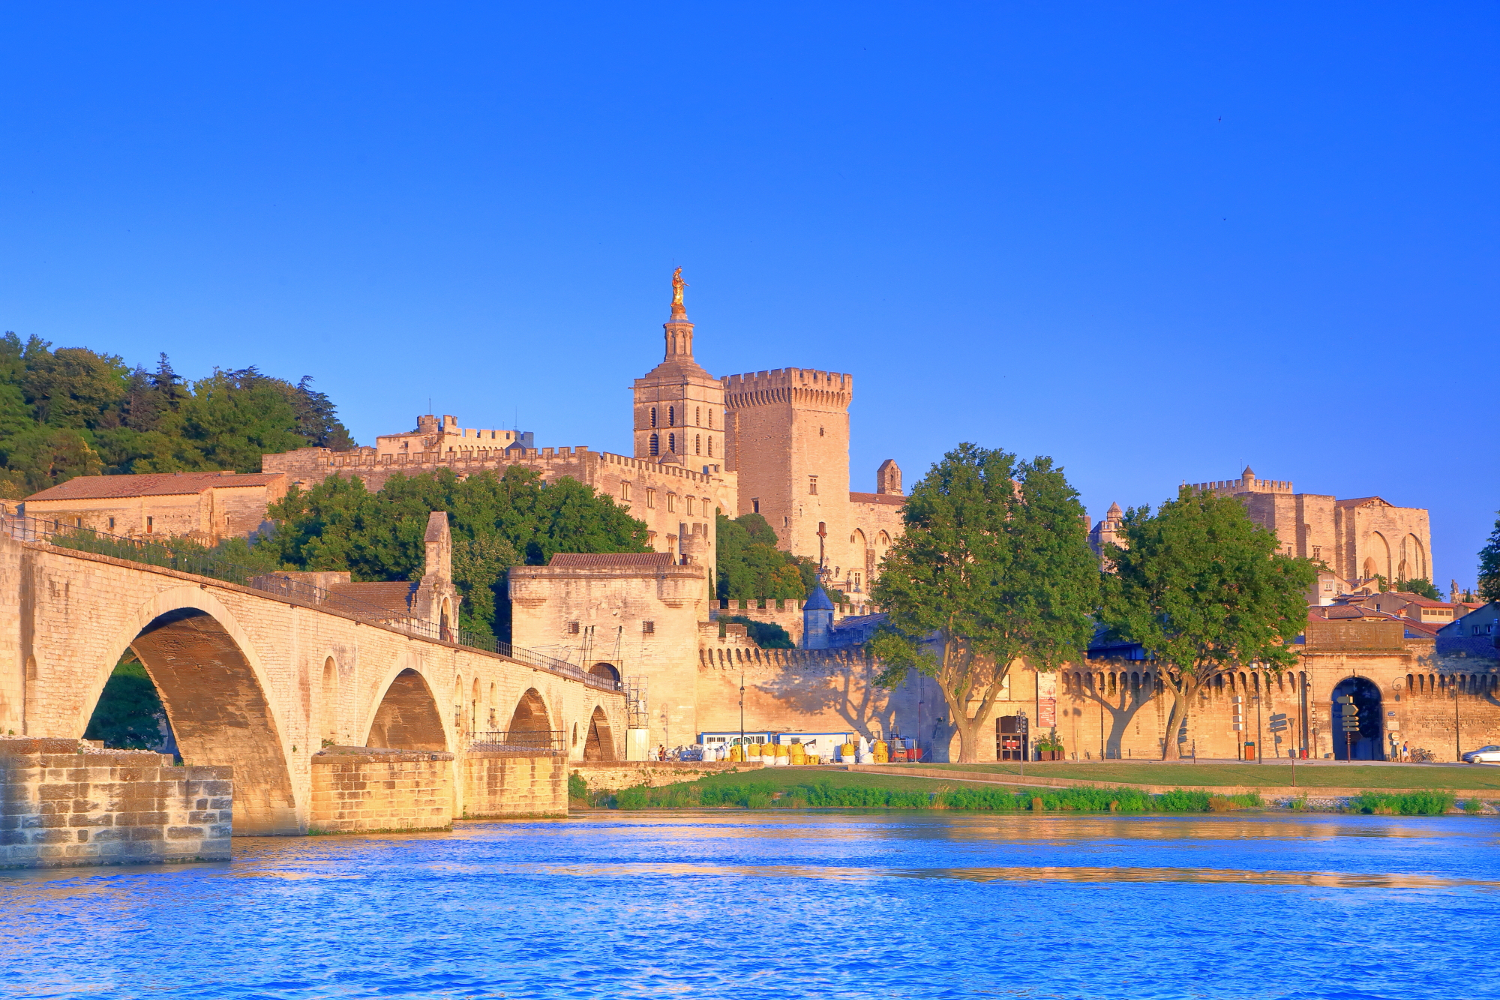 Avignon - The Cathedral and Papal Palace (Palais des Papes), #France, #travel #best #photos and #places